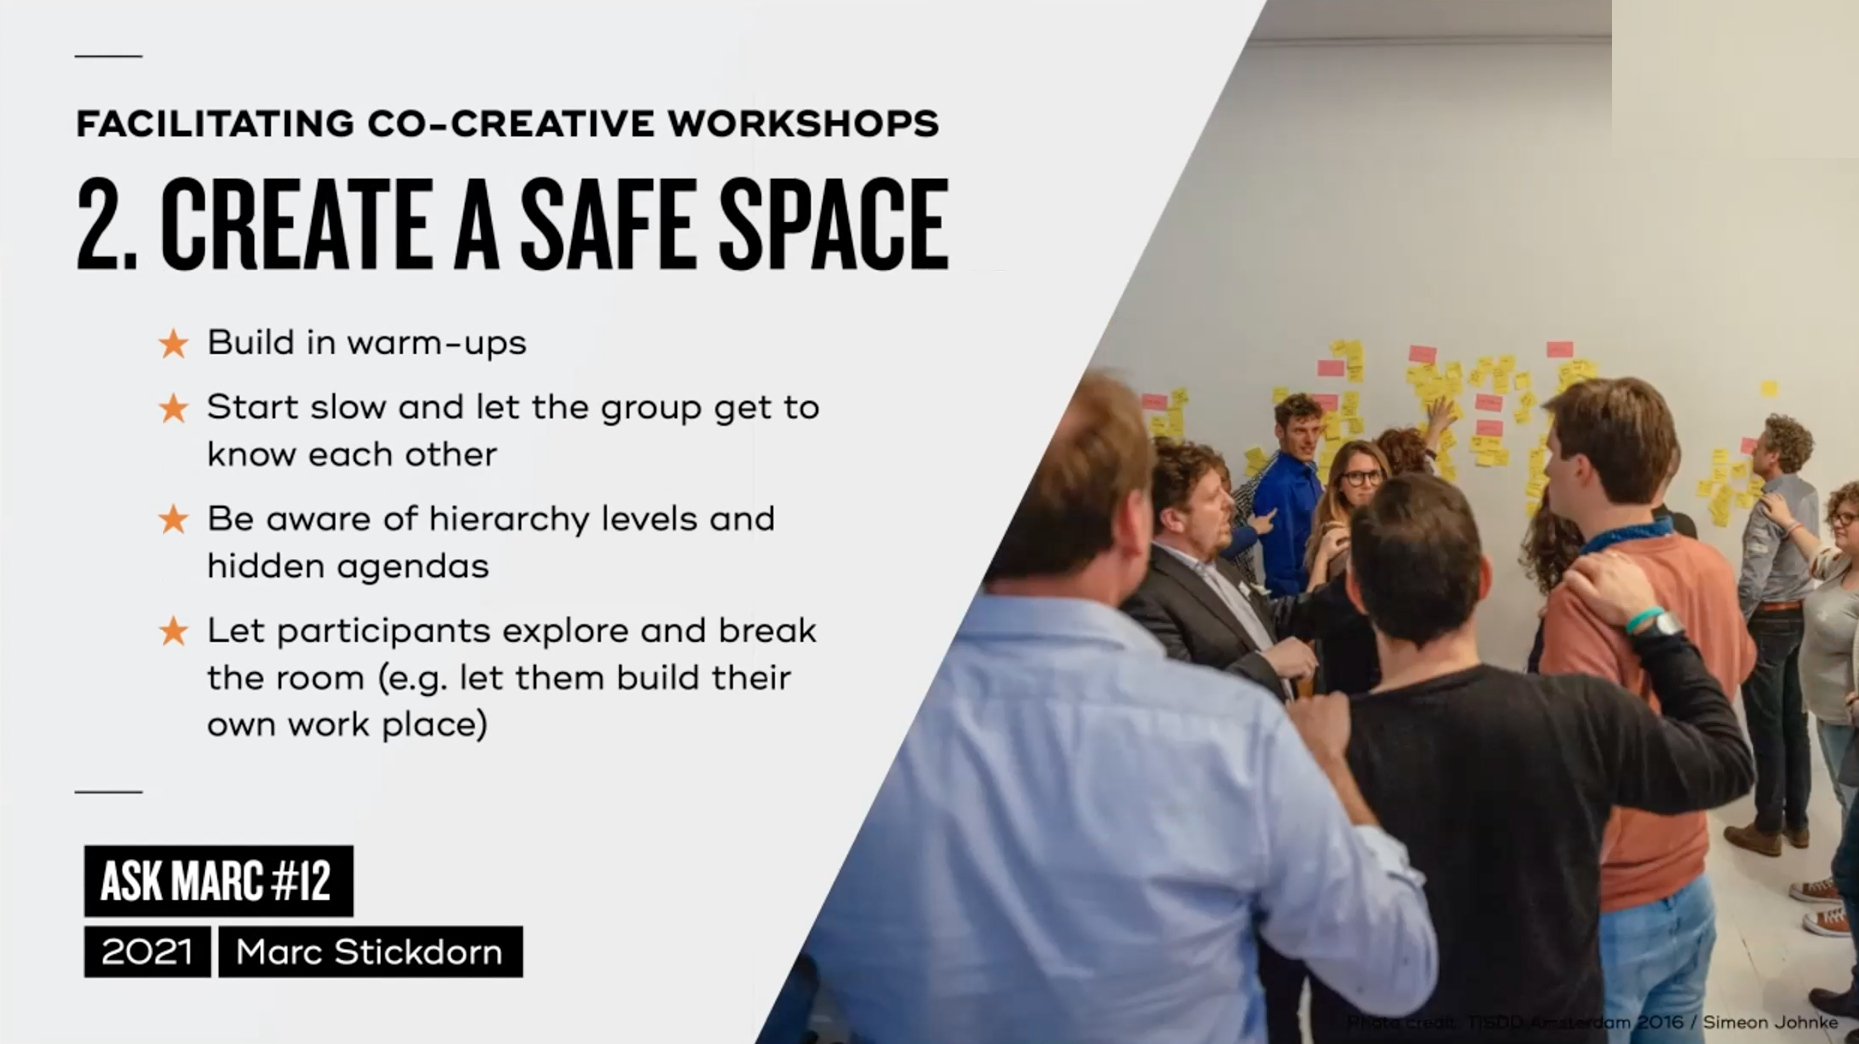 Tip 2: Creat a safe space